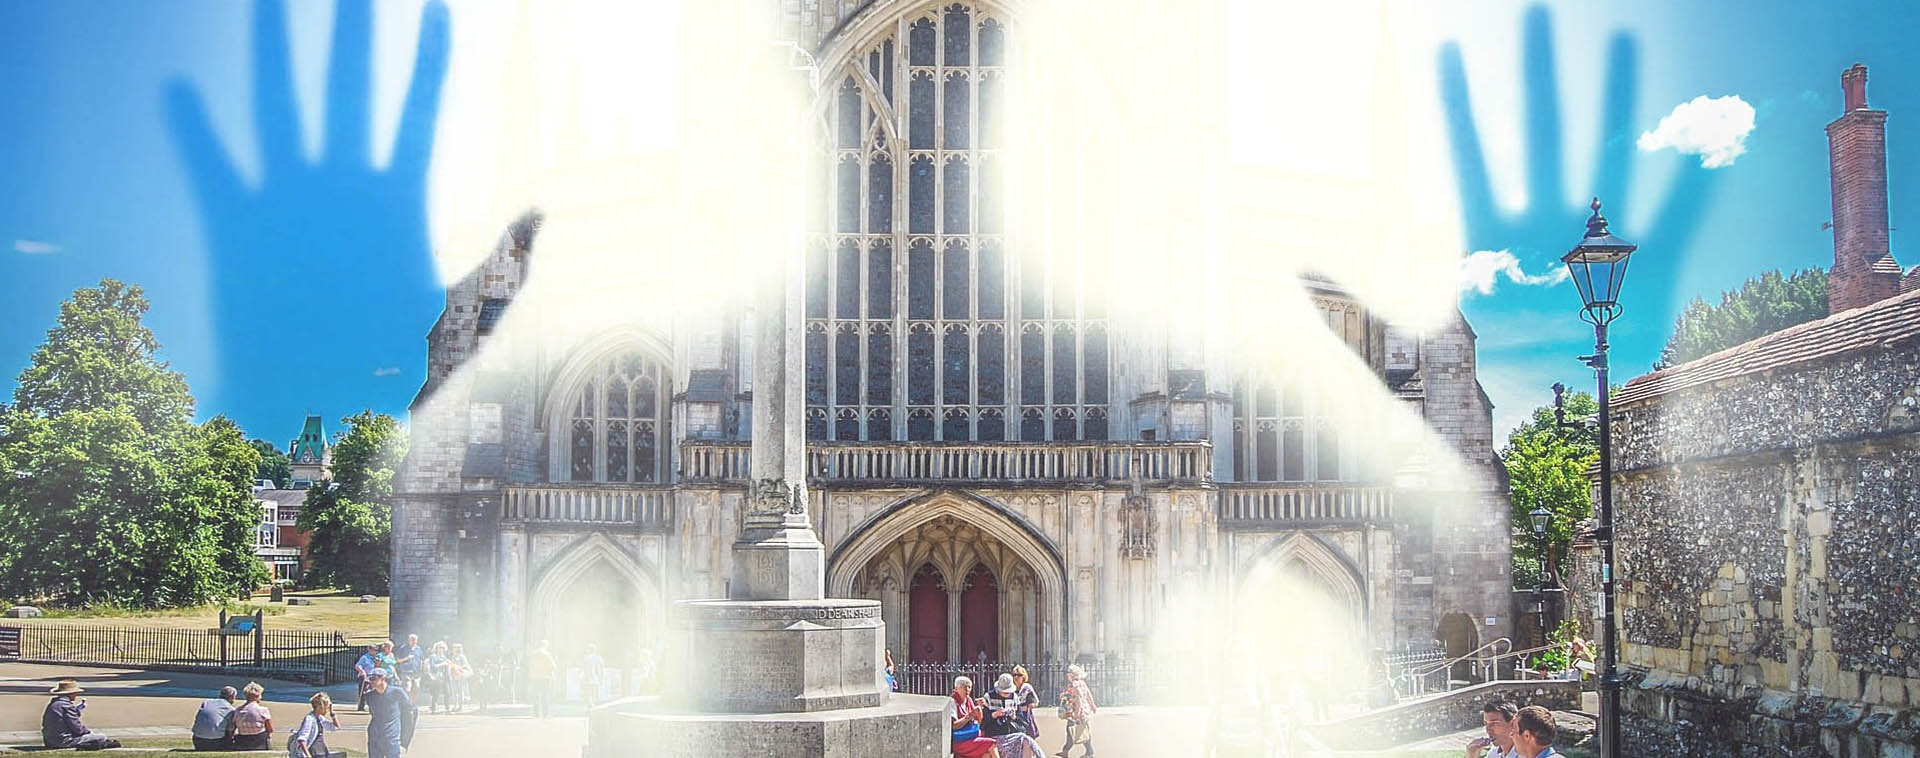 Quirky Treasure Trails - We have two ghost hunting Trails for you to explore Winchester with...